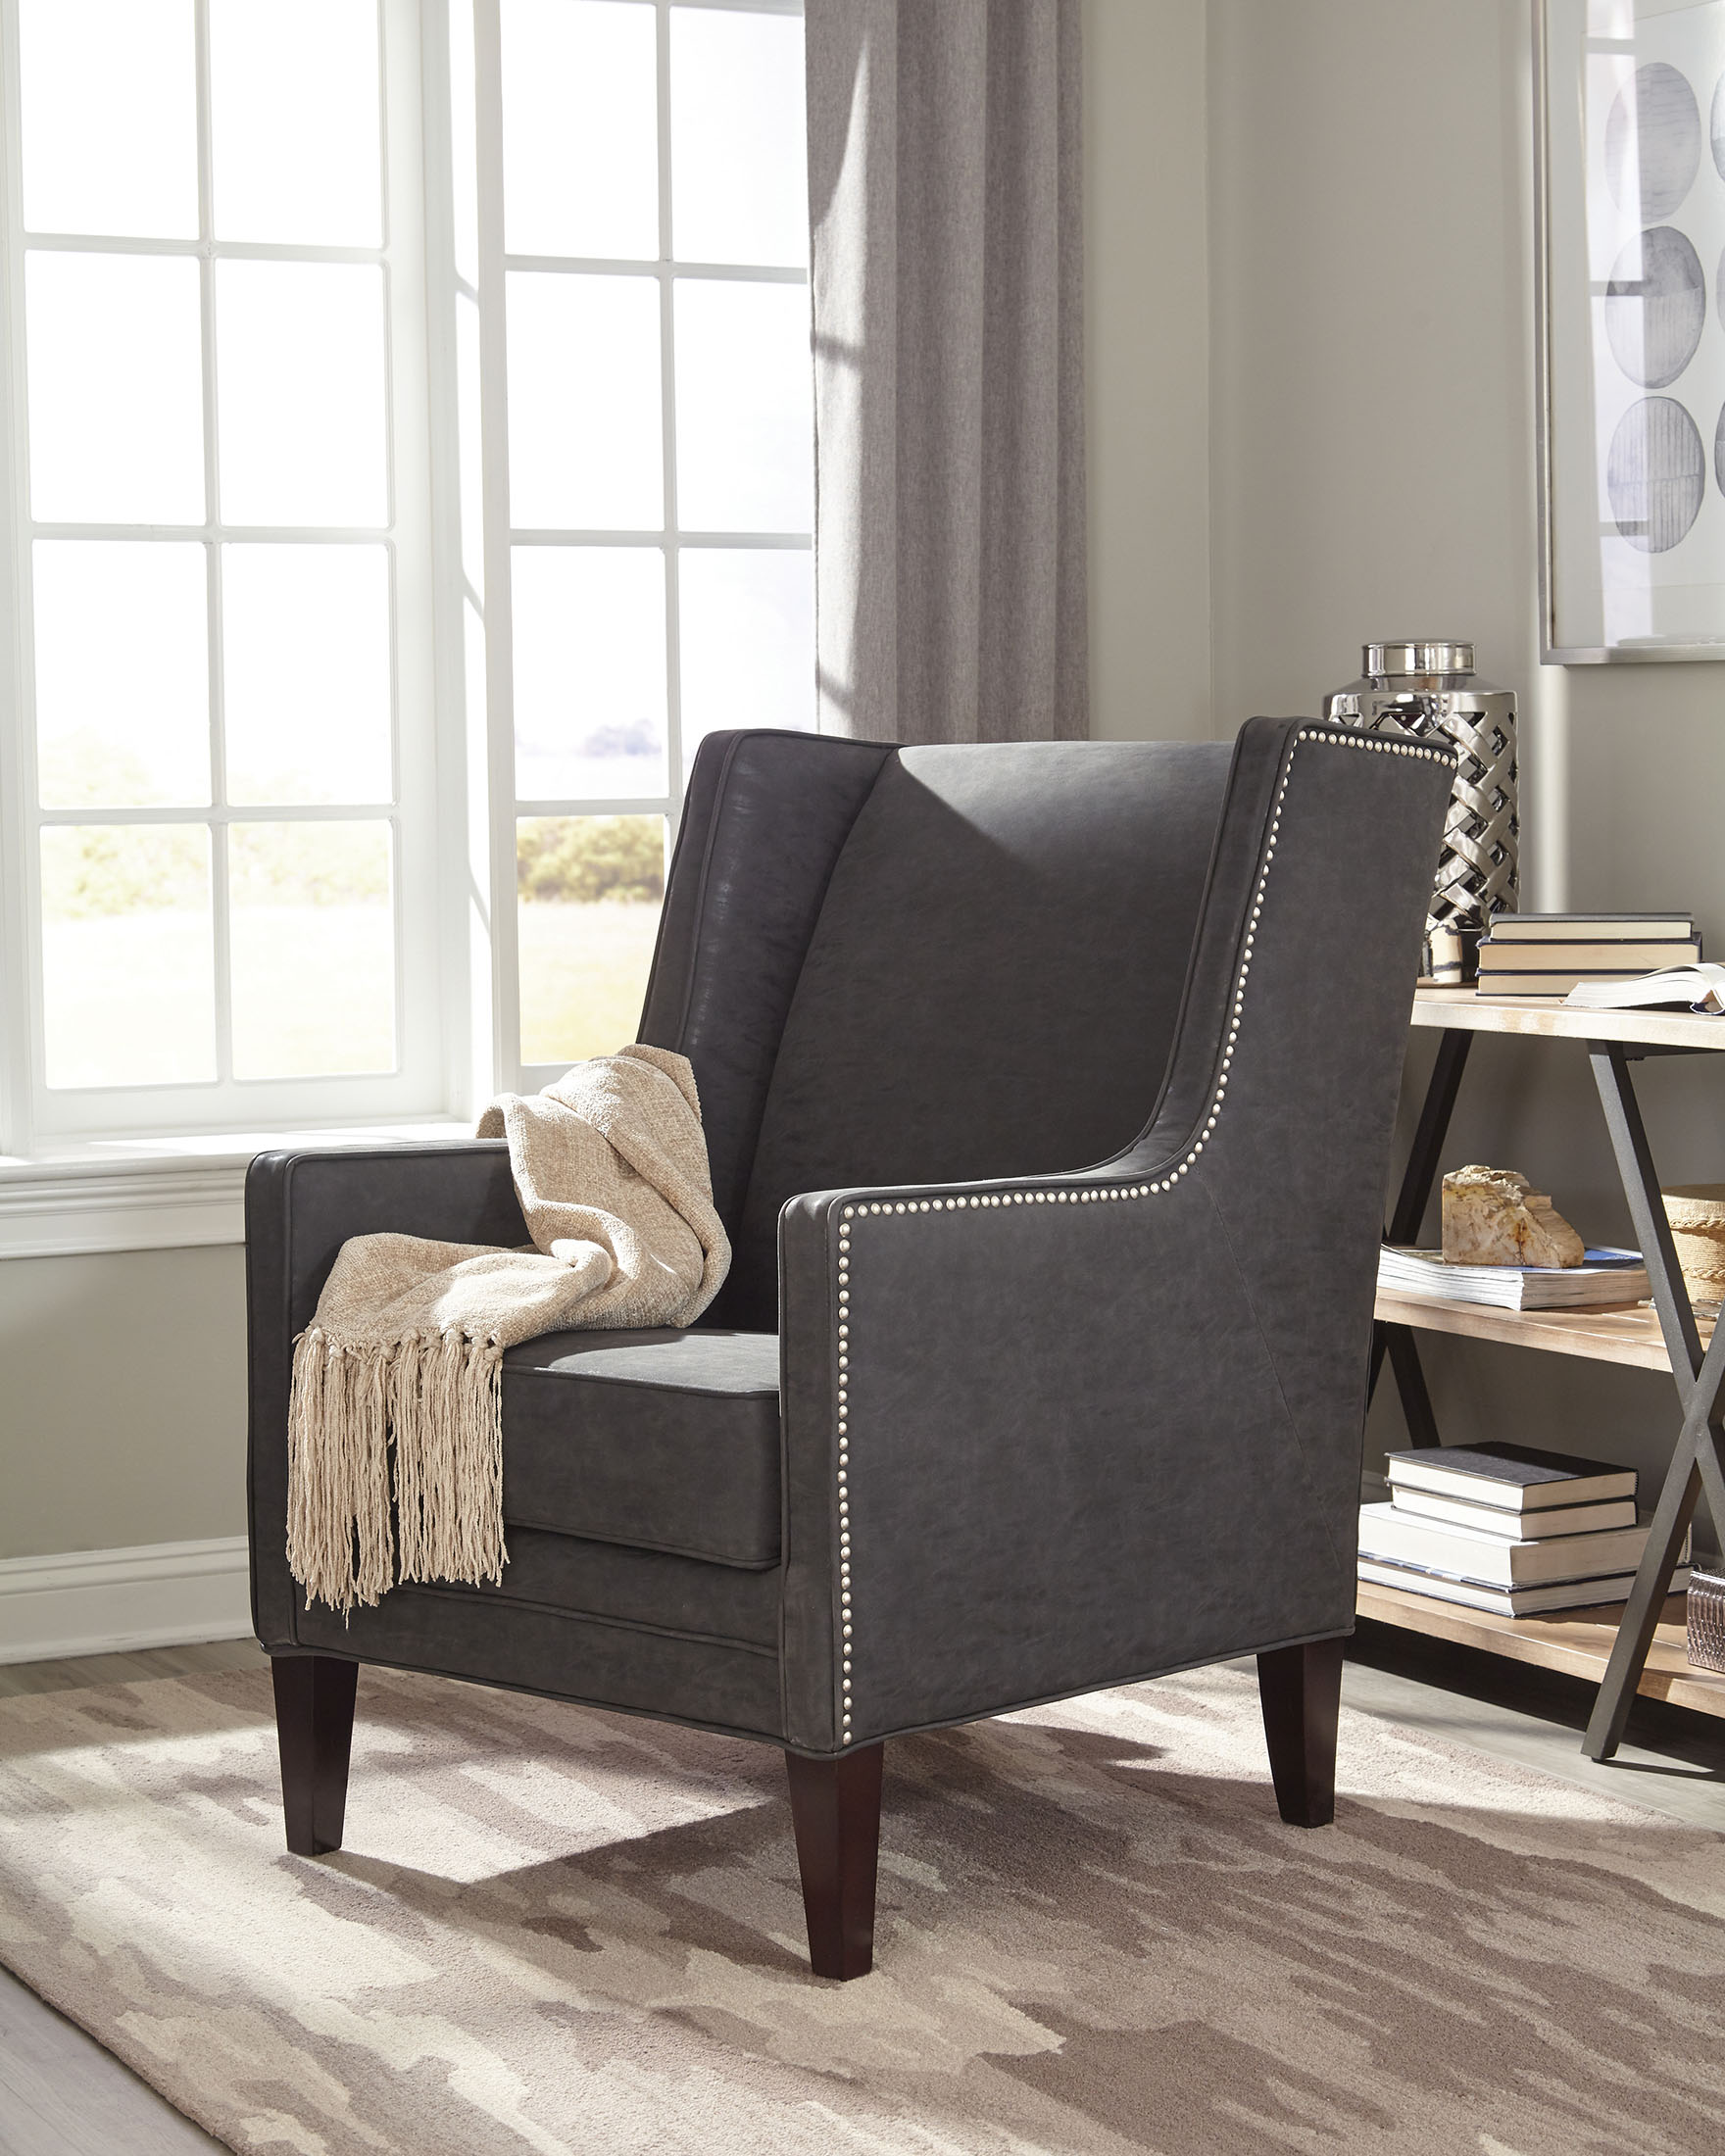 Donny Osmond Home 902988 Charcoal Fabric Accent Chair